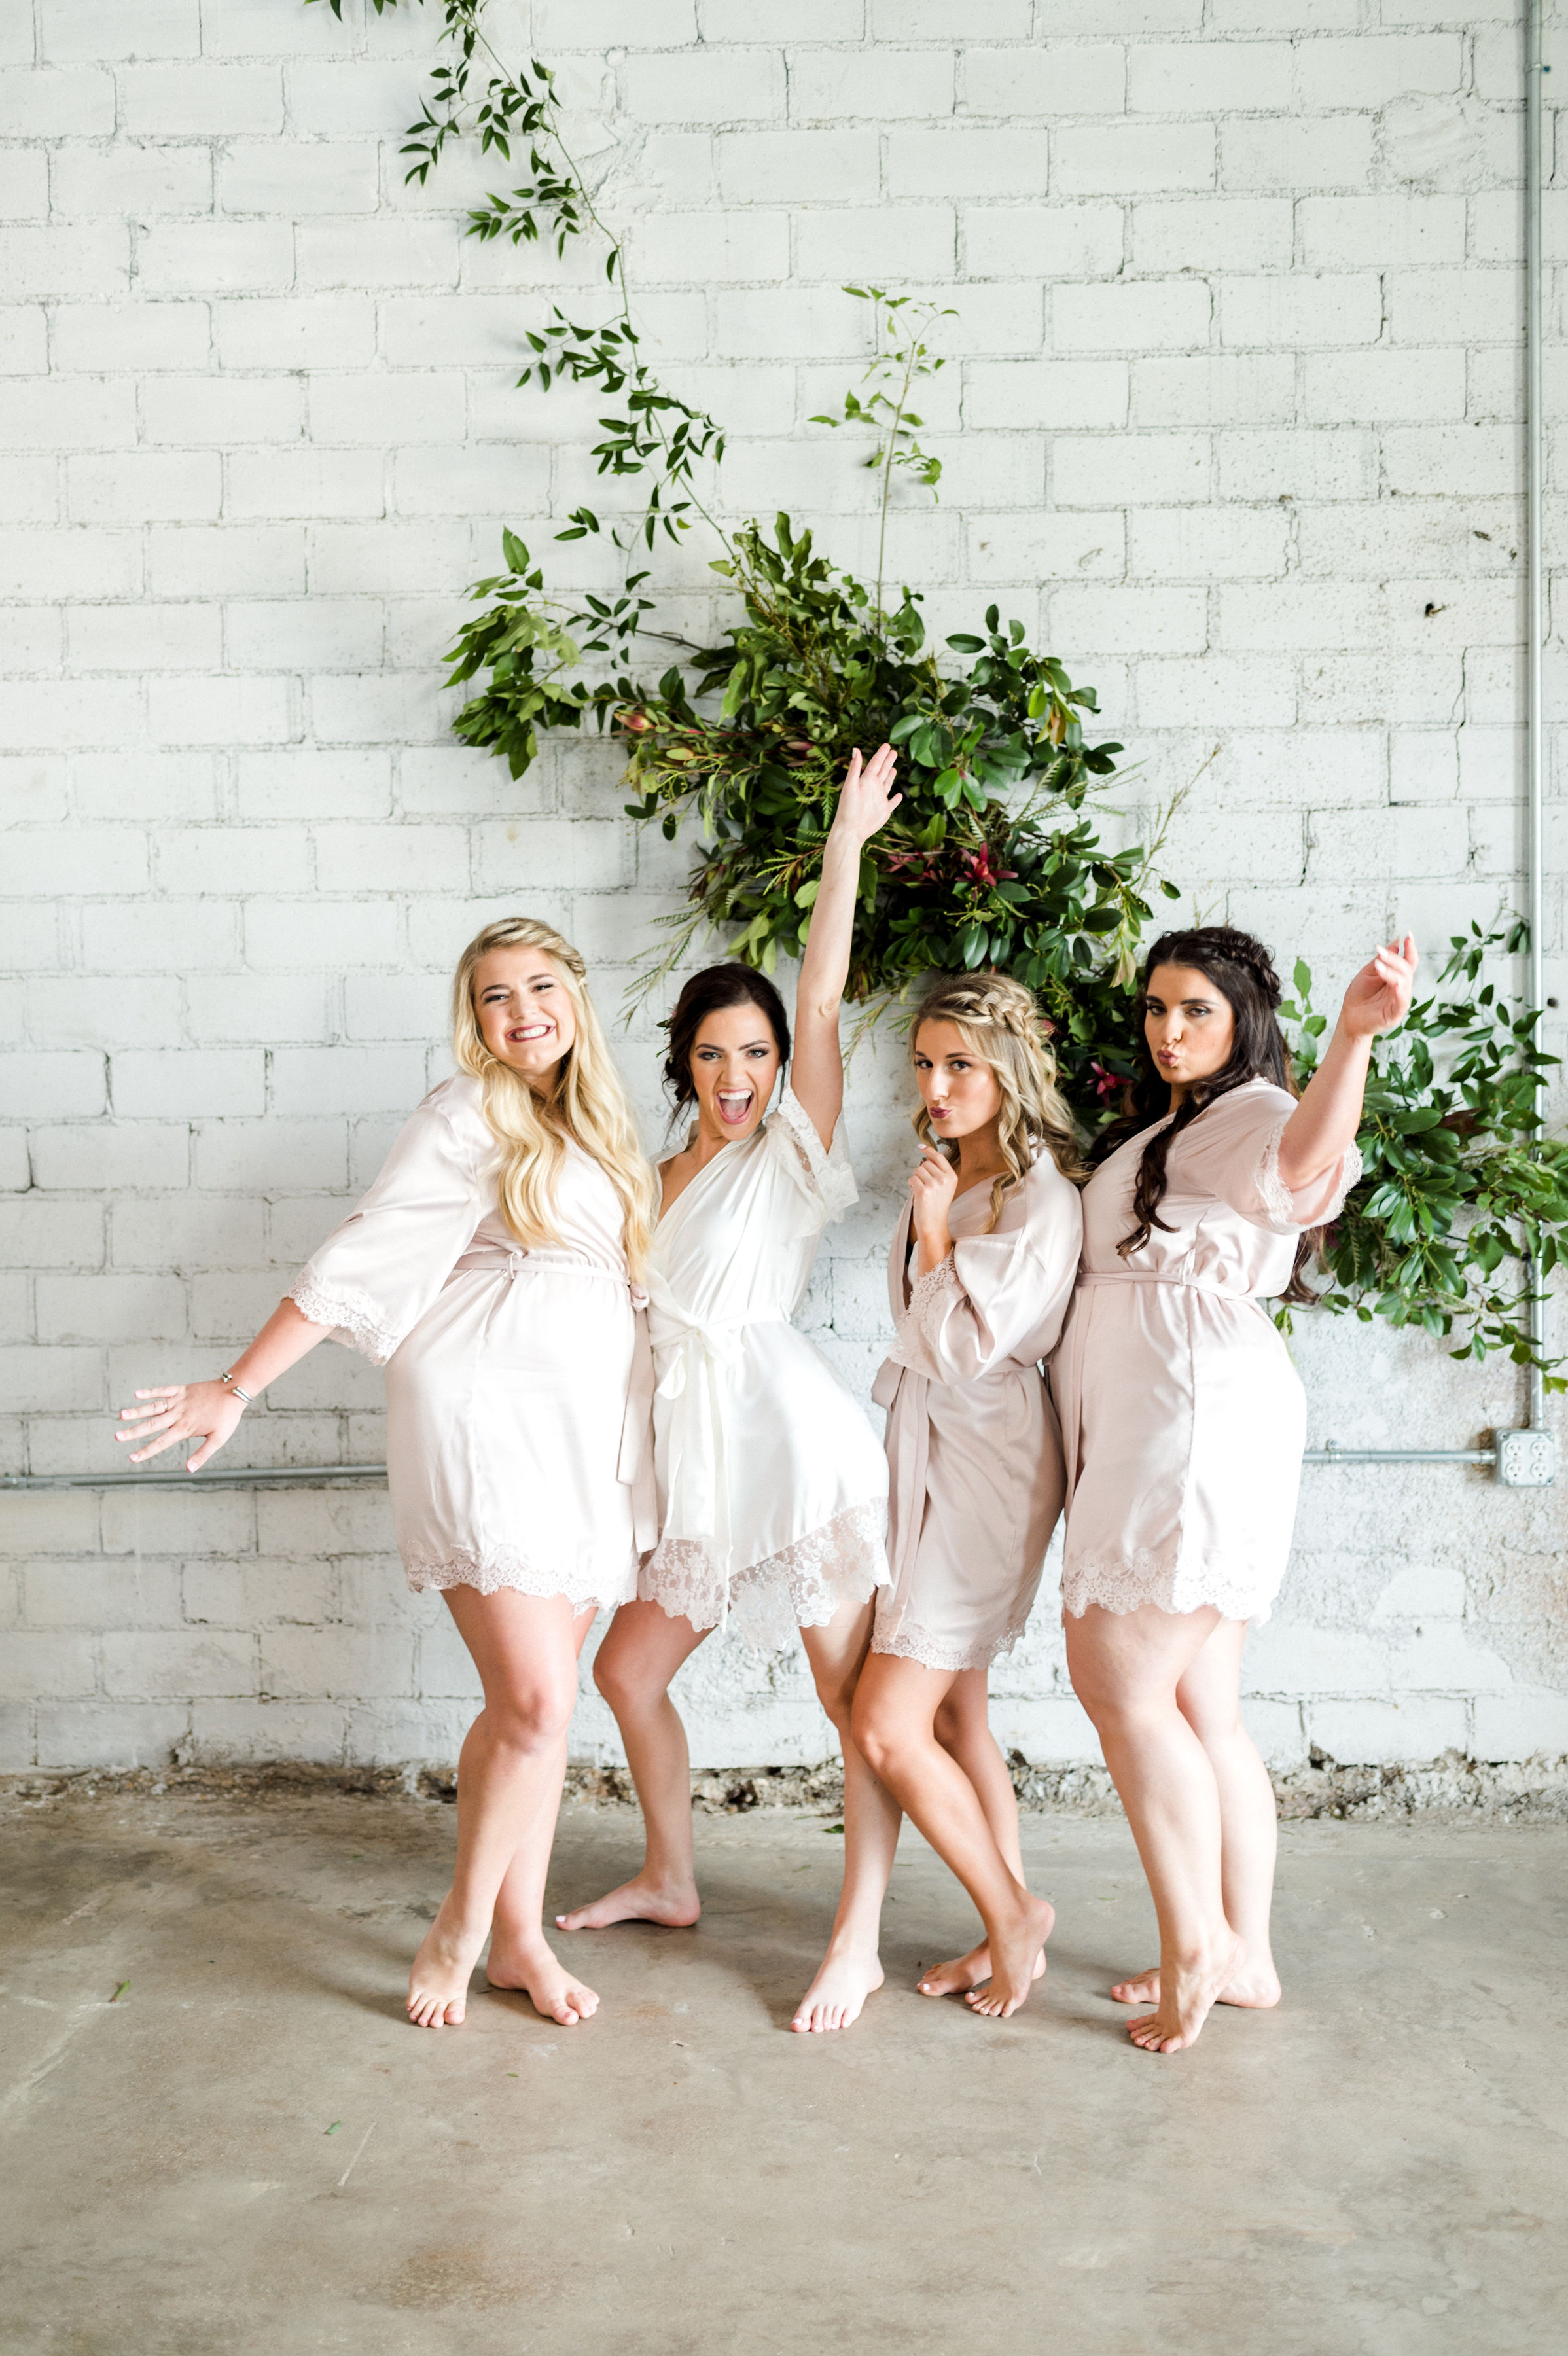 Bridesmaids Matching Robes | Fall Eclectic Industrial Wedding